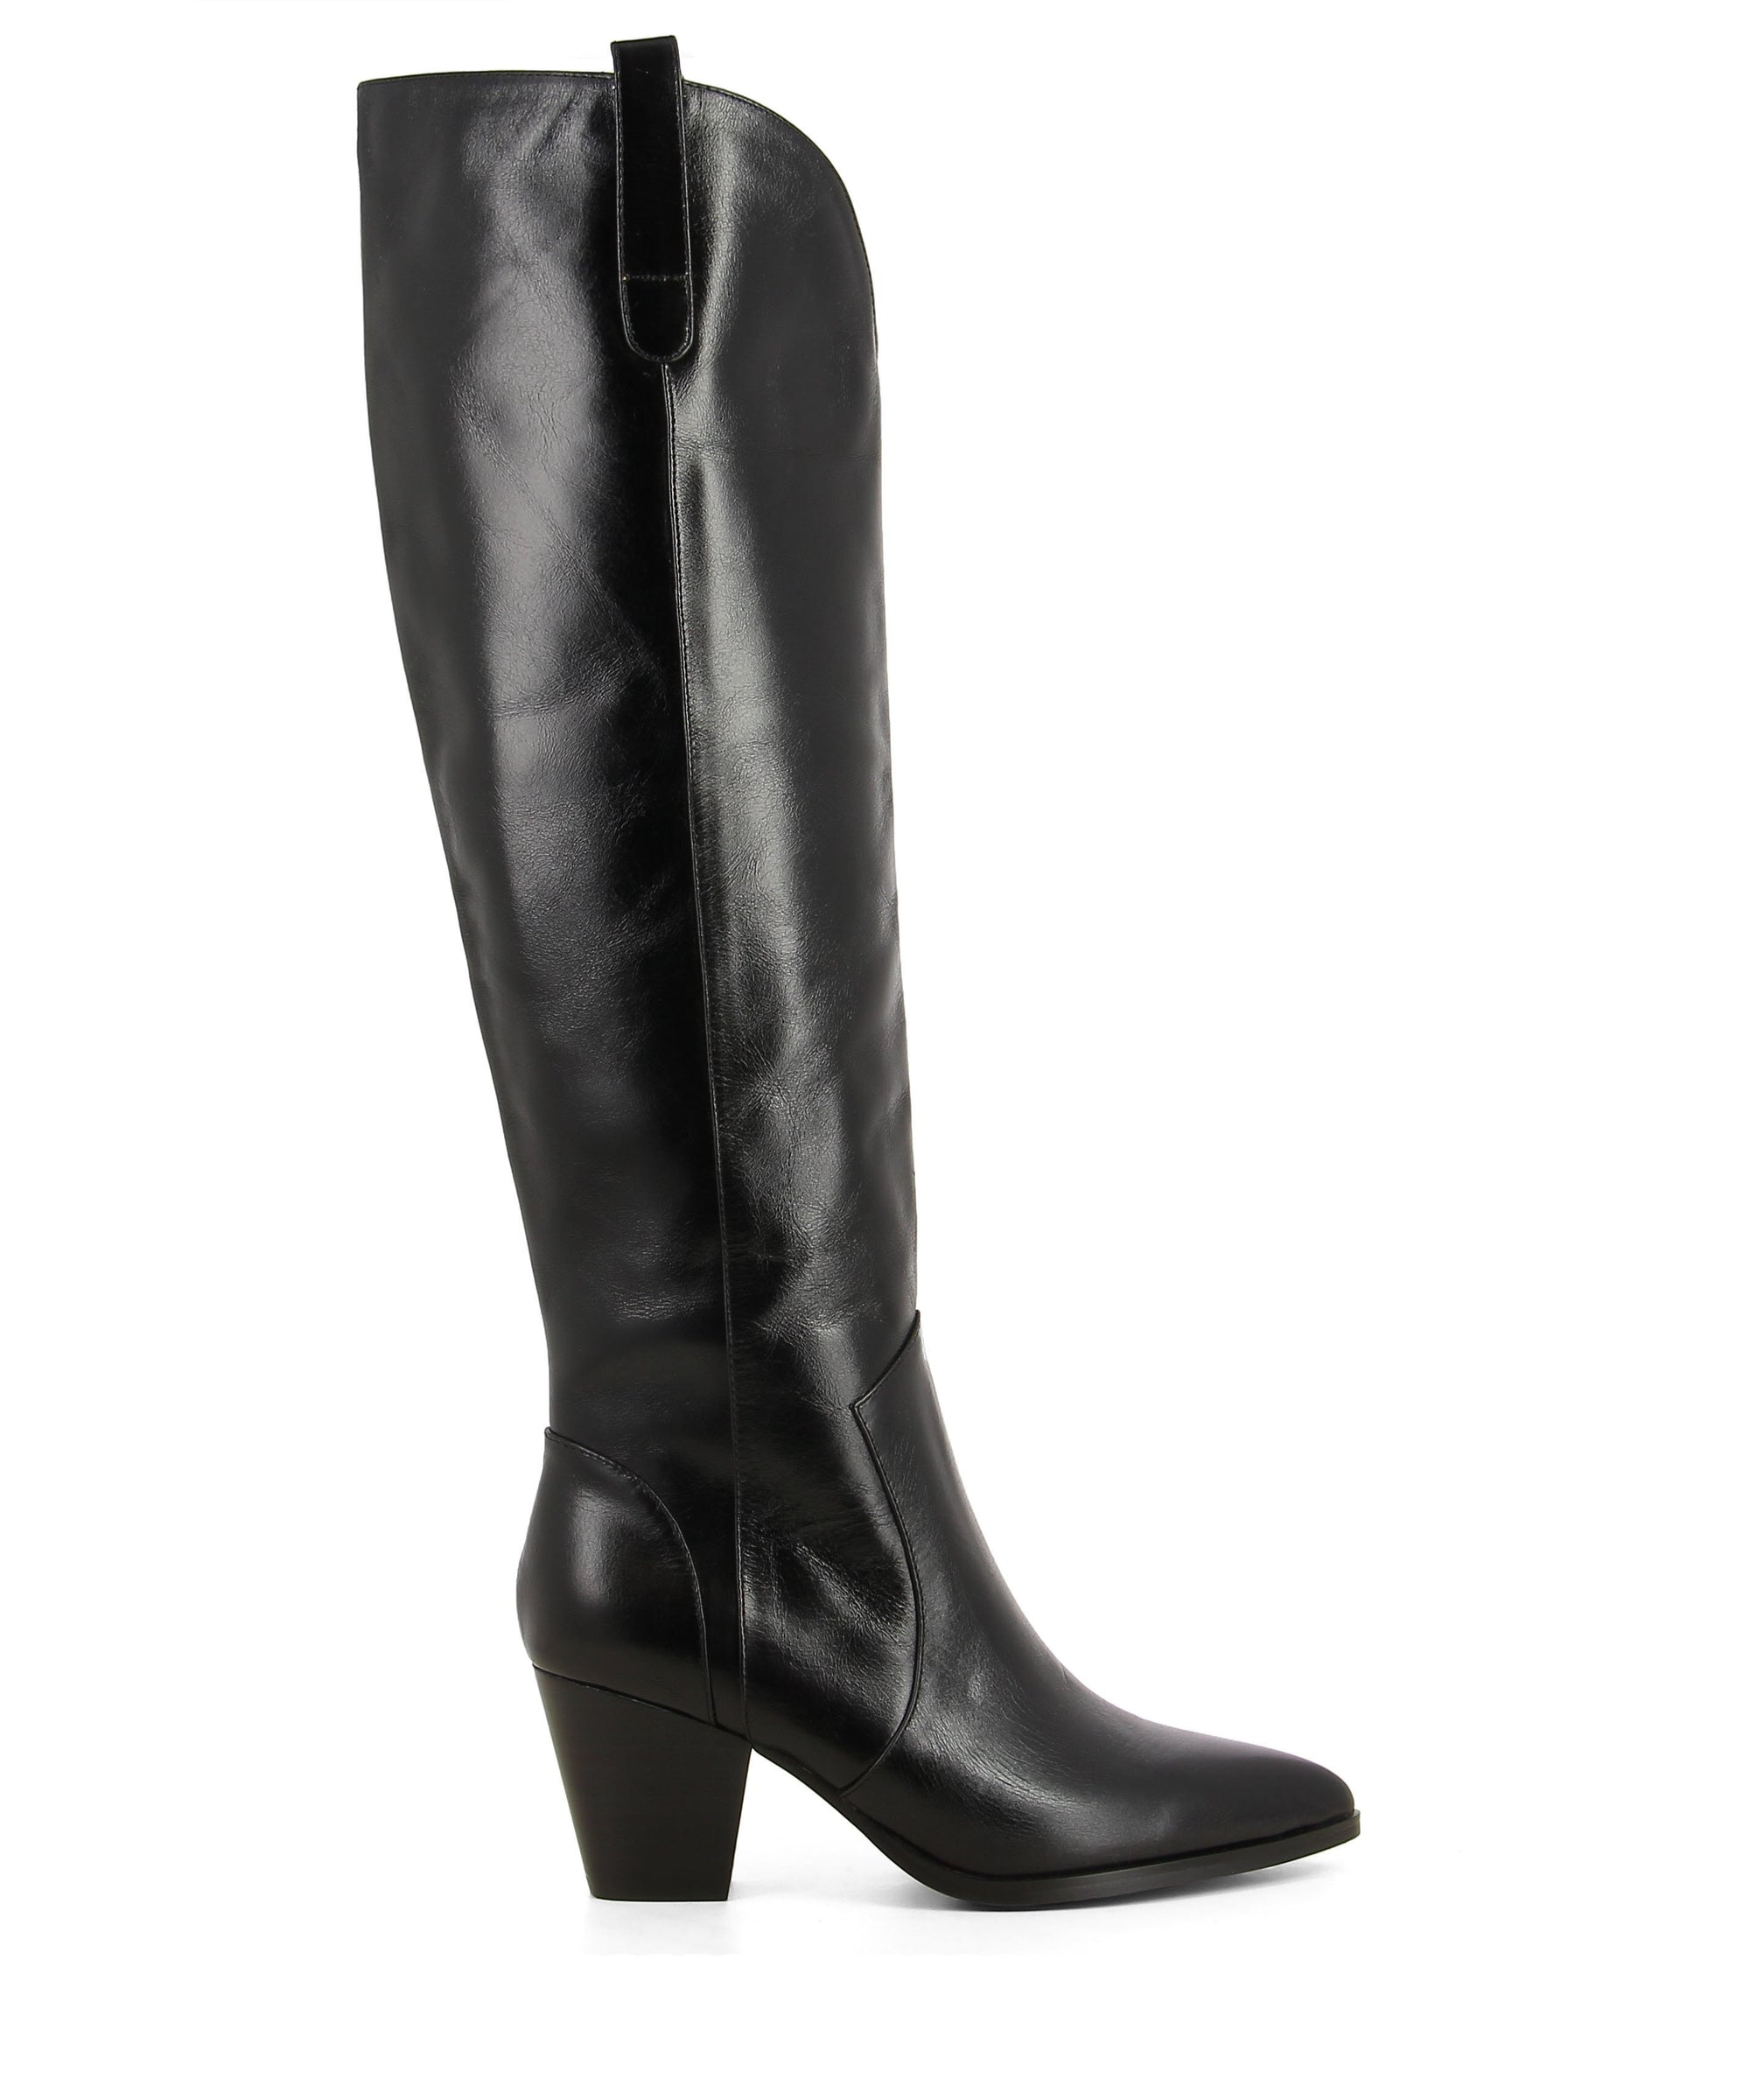 Black western style knee high boots featuring a side zipper fastening, a v shaped leg opening, a tapered block heel and a pointed toe by 2 Baia Vista.